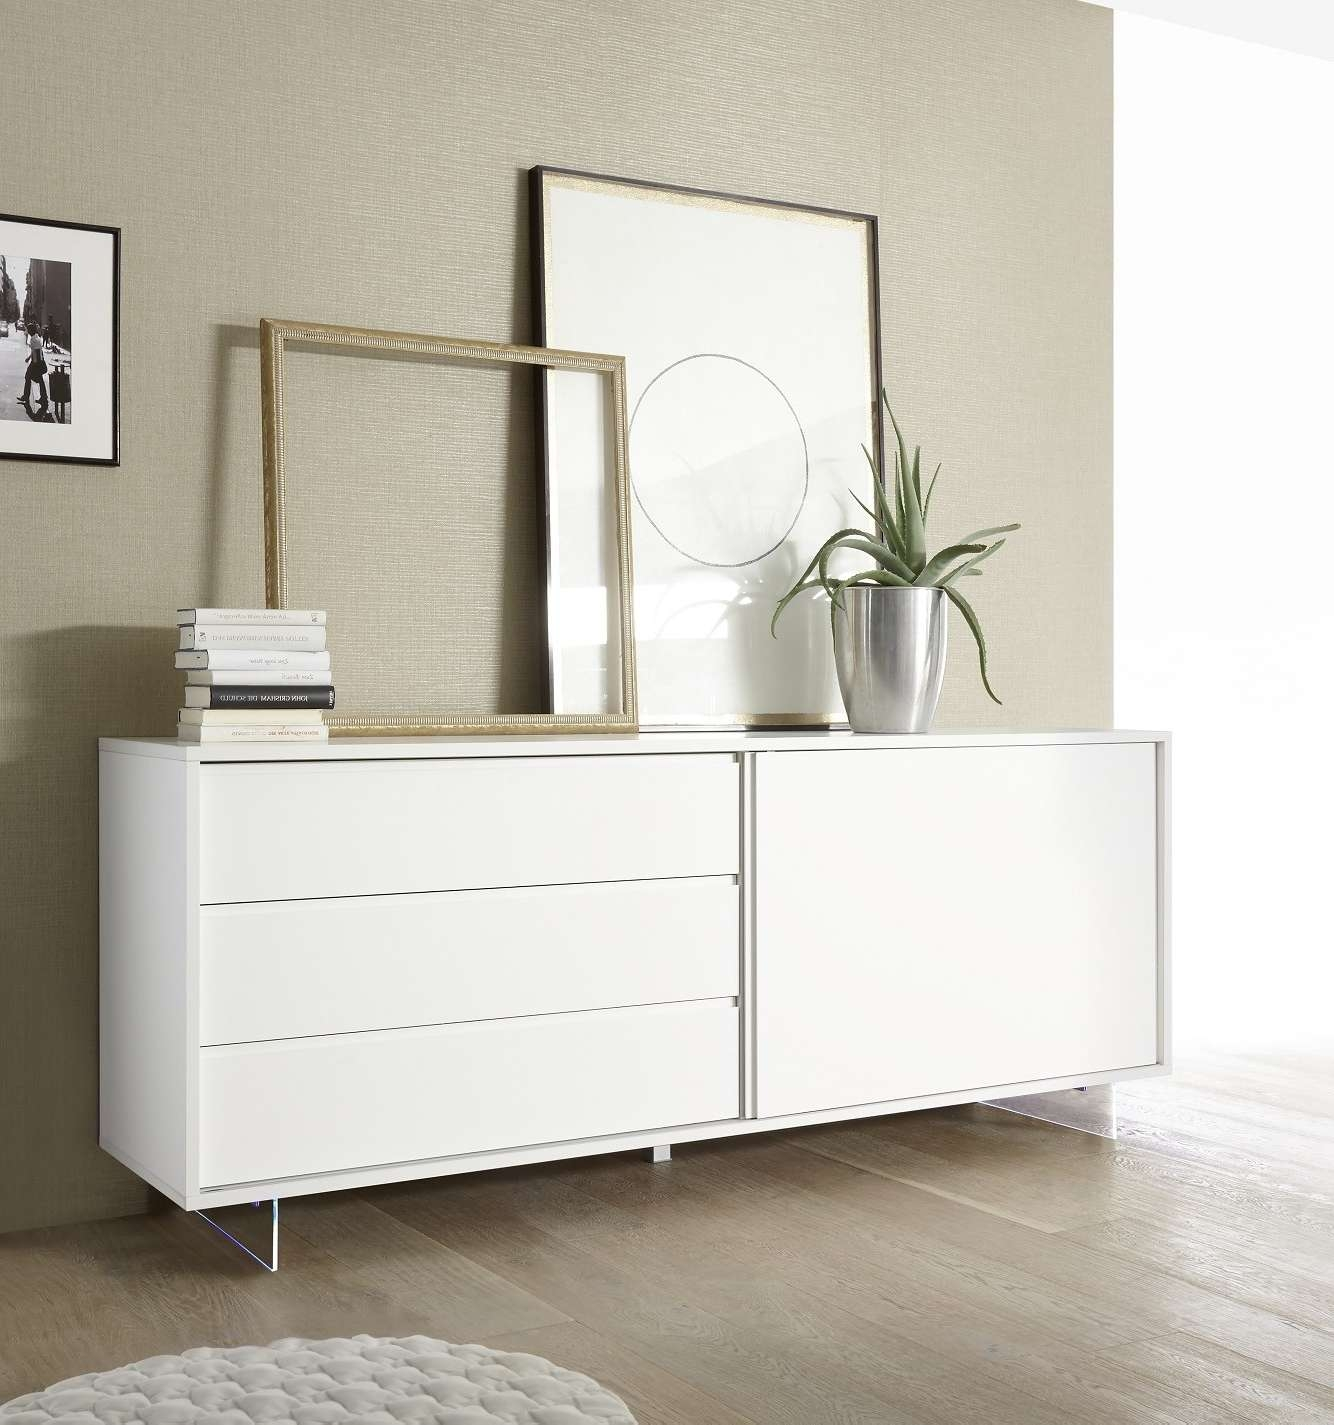 Modern Sideboards Uk – Sena Home Furniture Inside Sideboards With Lights (View 18 of 20)